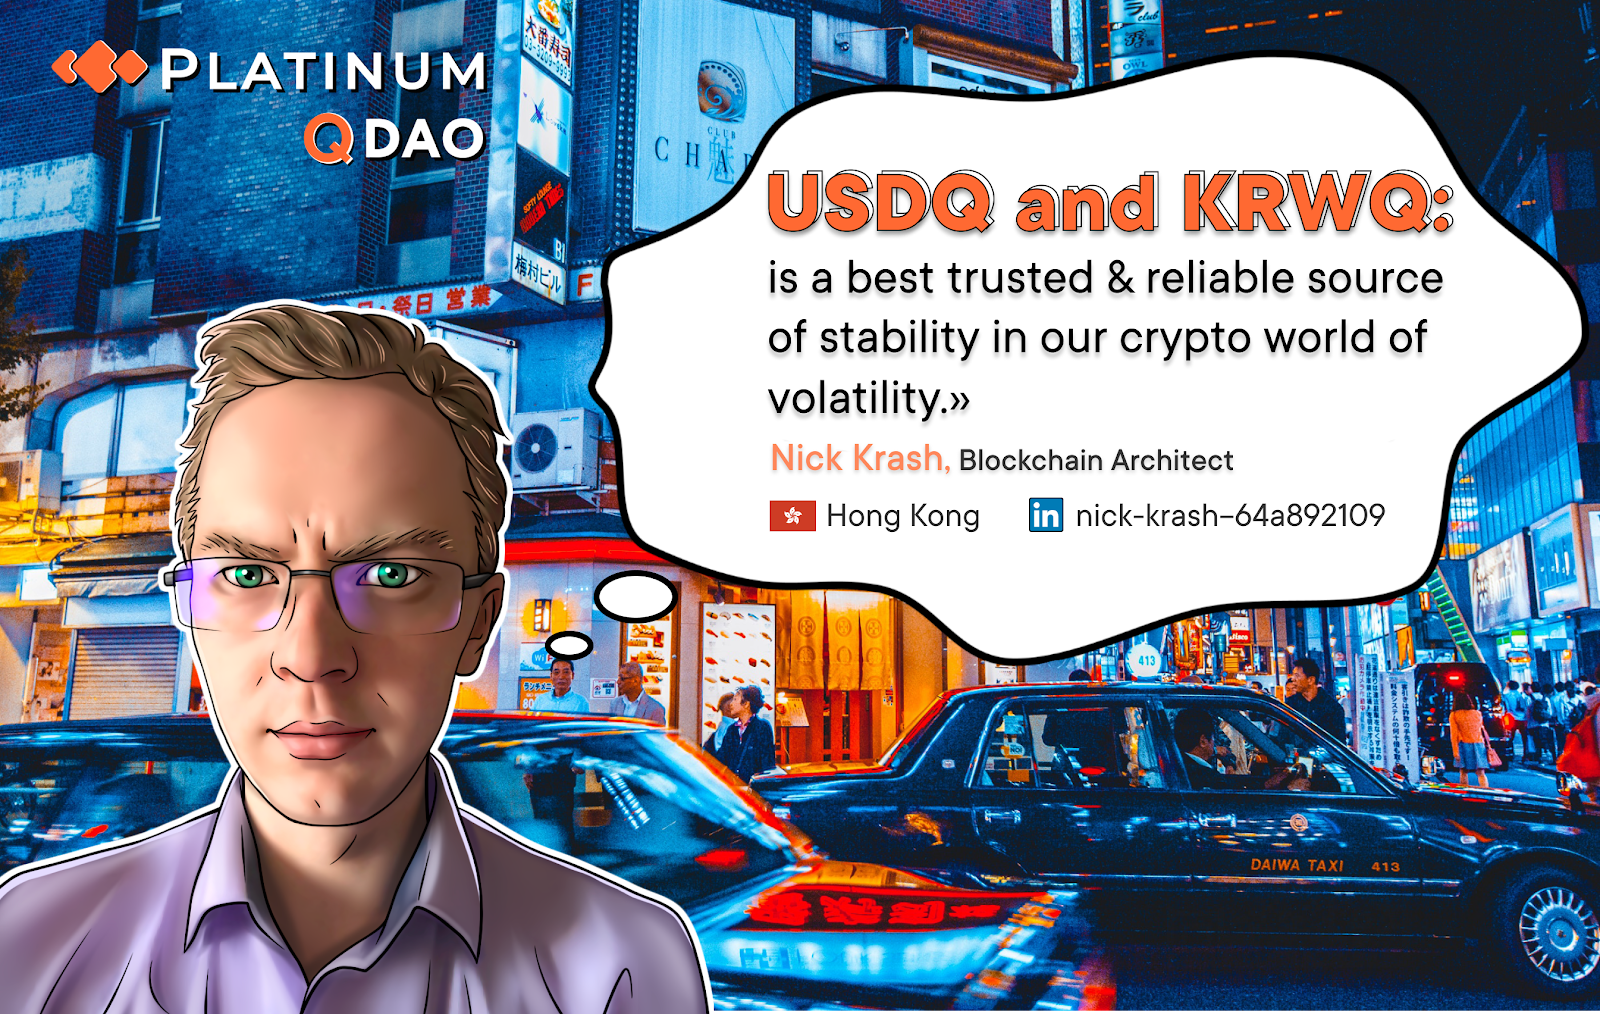 Obtaining real stablecoins  USDQ and KRWQ: Ecosystem of Q DAO stablecoins is being developed in counterweight to BitFinex`s Scammy Tether. Trade'em all on BTCNEXT.io